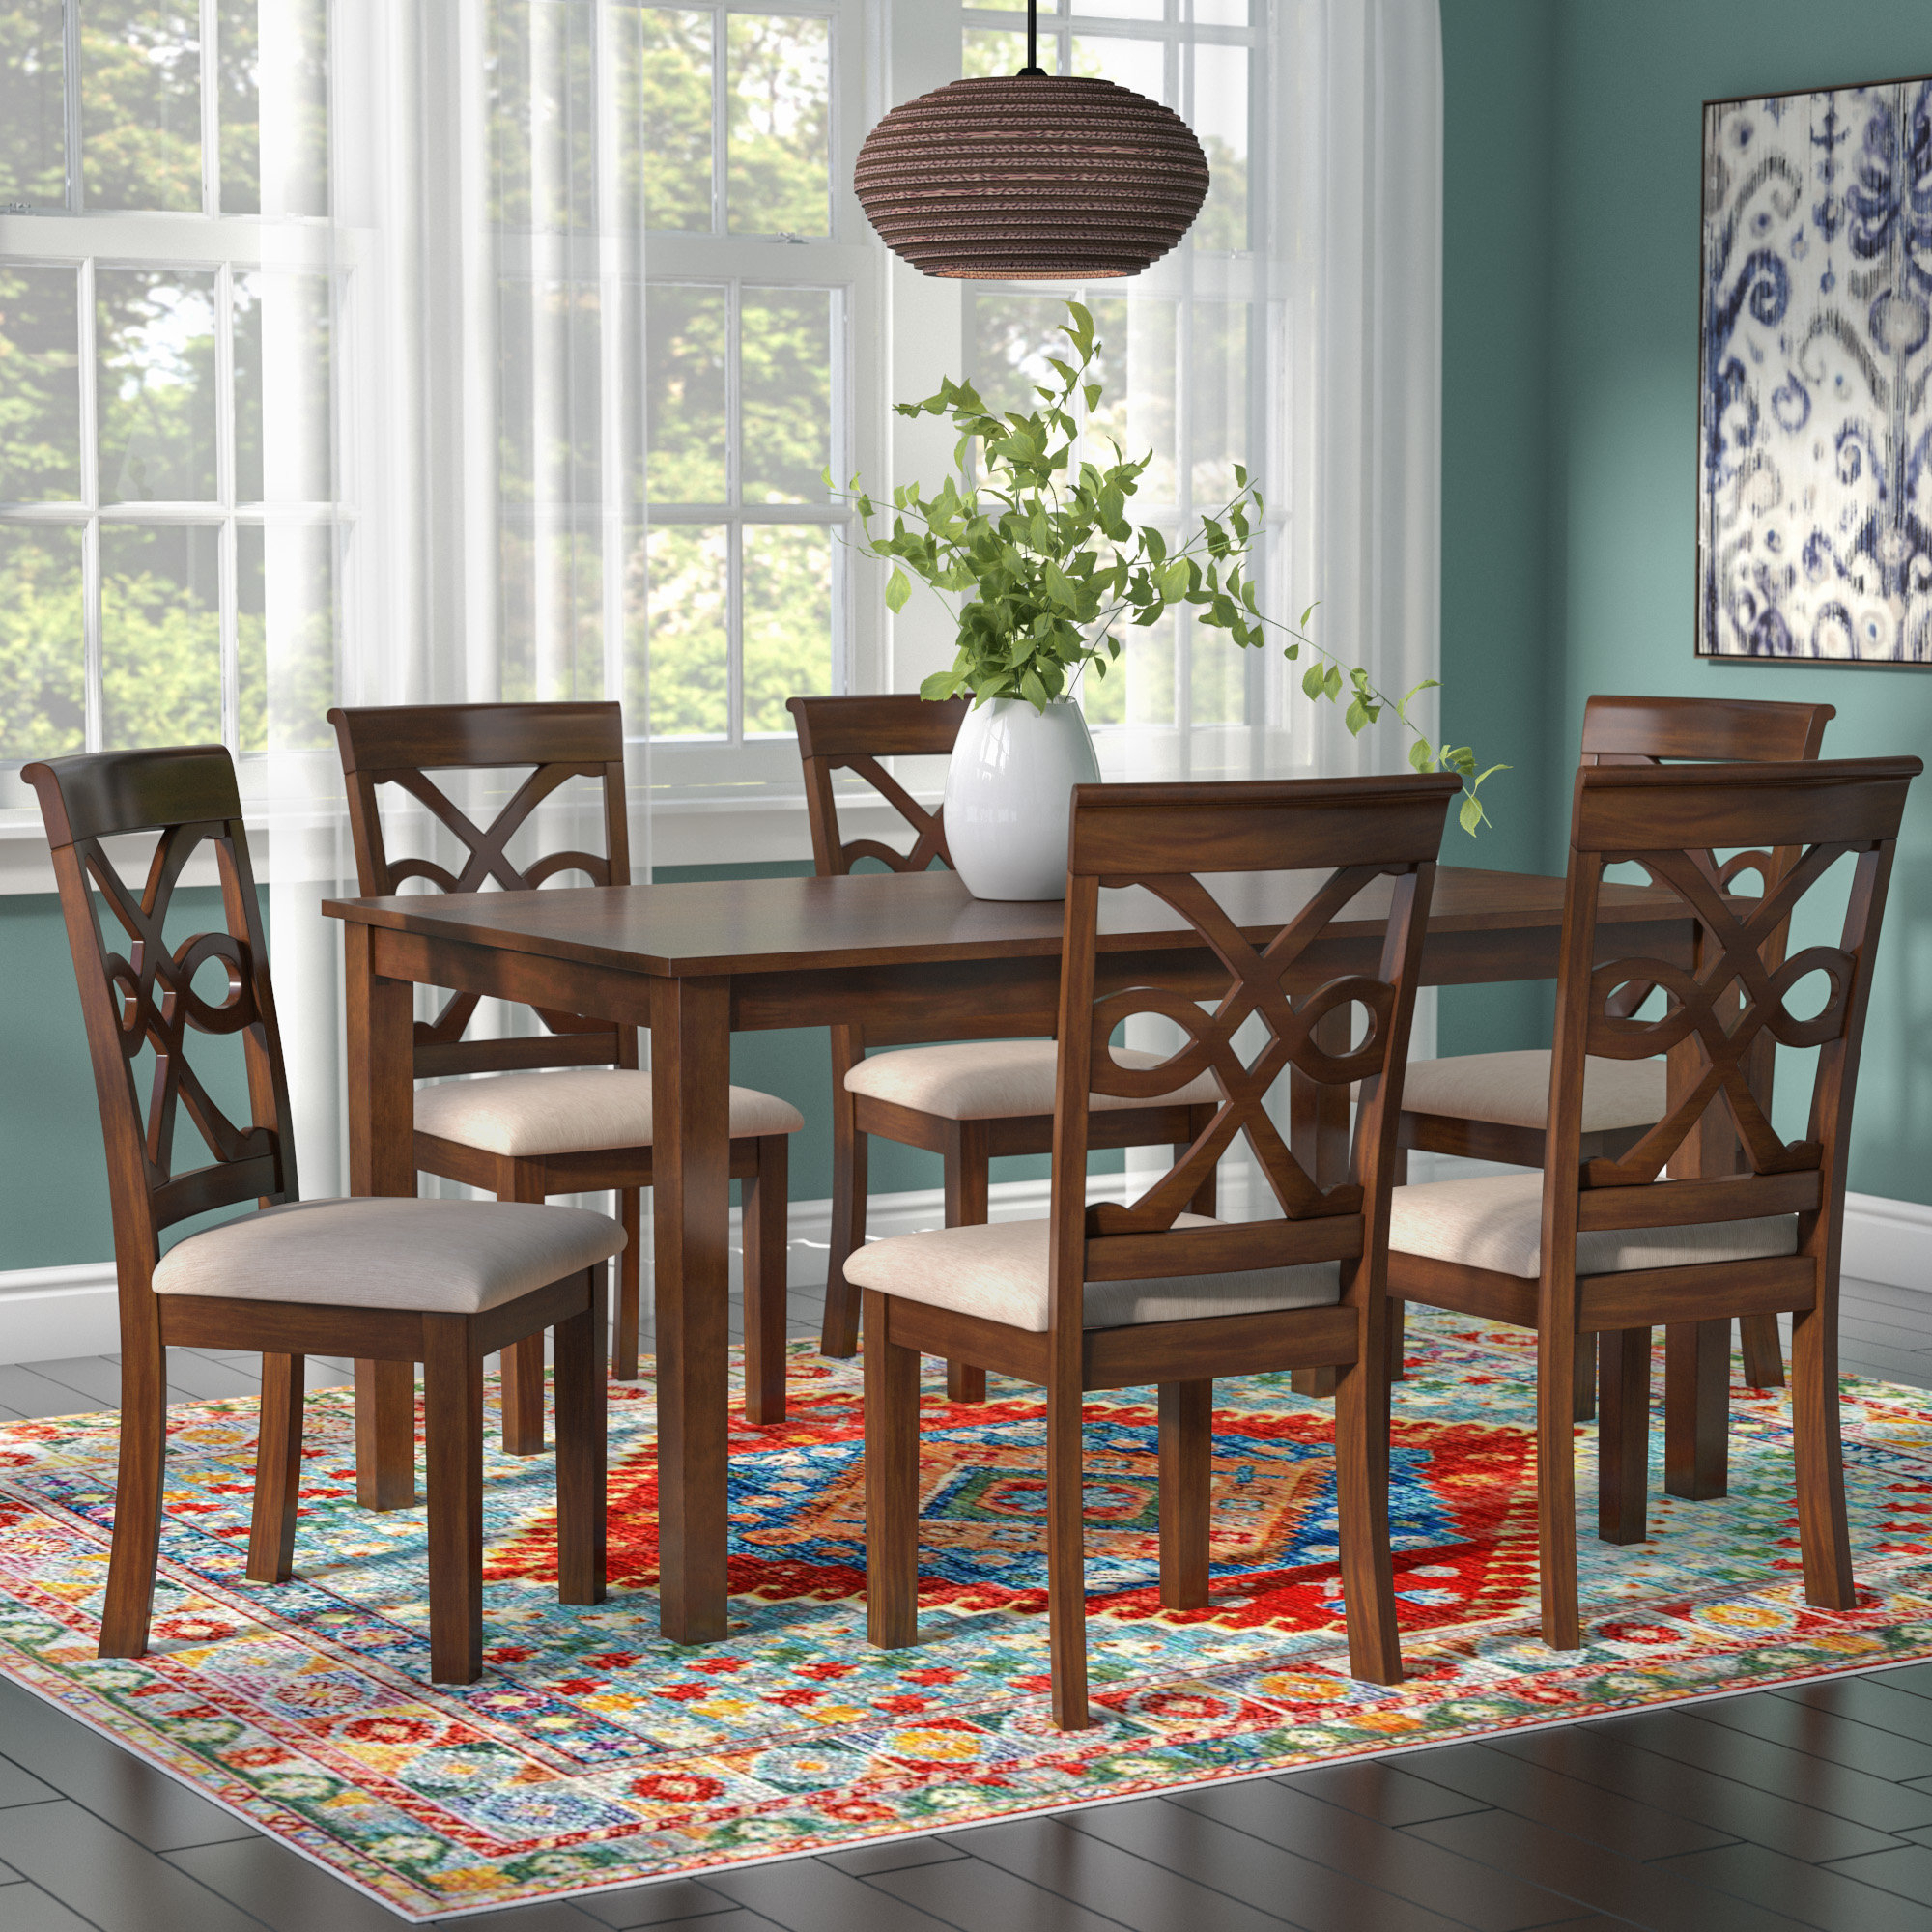 Laconia 7 Pieces Solid Wood Dining Sets (Set Of 7) Pertaining To Most Recently Released World Menagerie Duron 7 Piece Dining Set & Reviews (View 7 of 25)